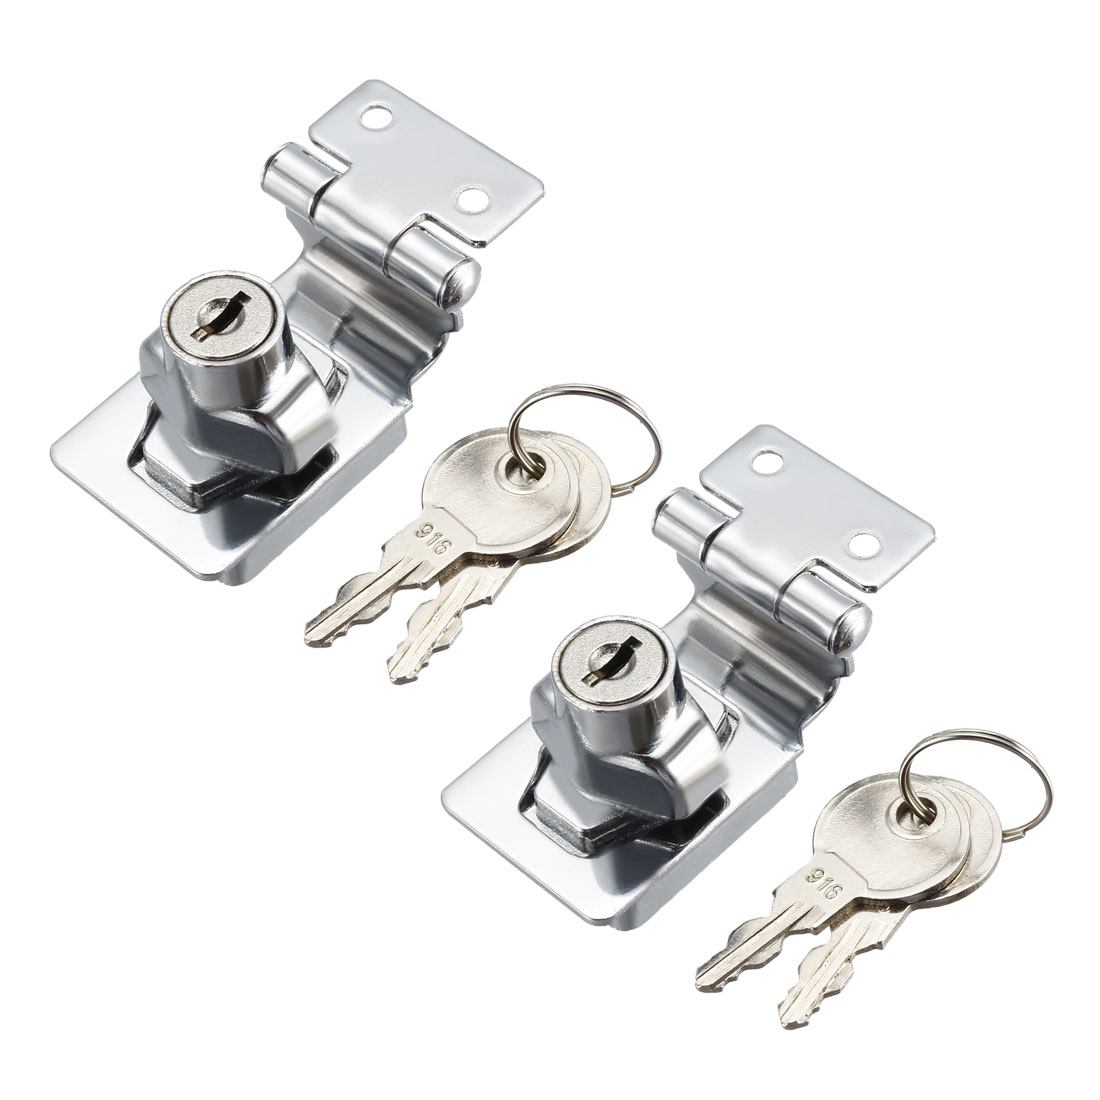 Keyed Hasp Lock 54mm Twist Knob Keyed Locking Hasp for Door Cabinet 2 Pcs